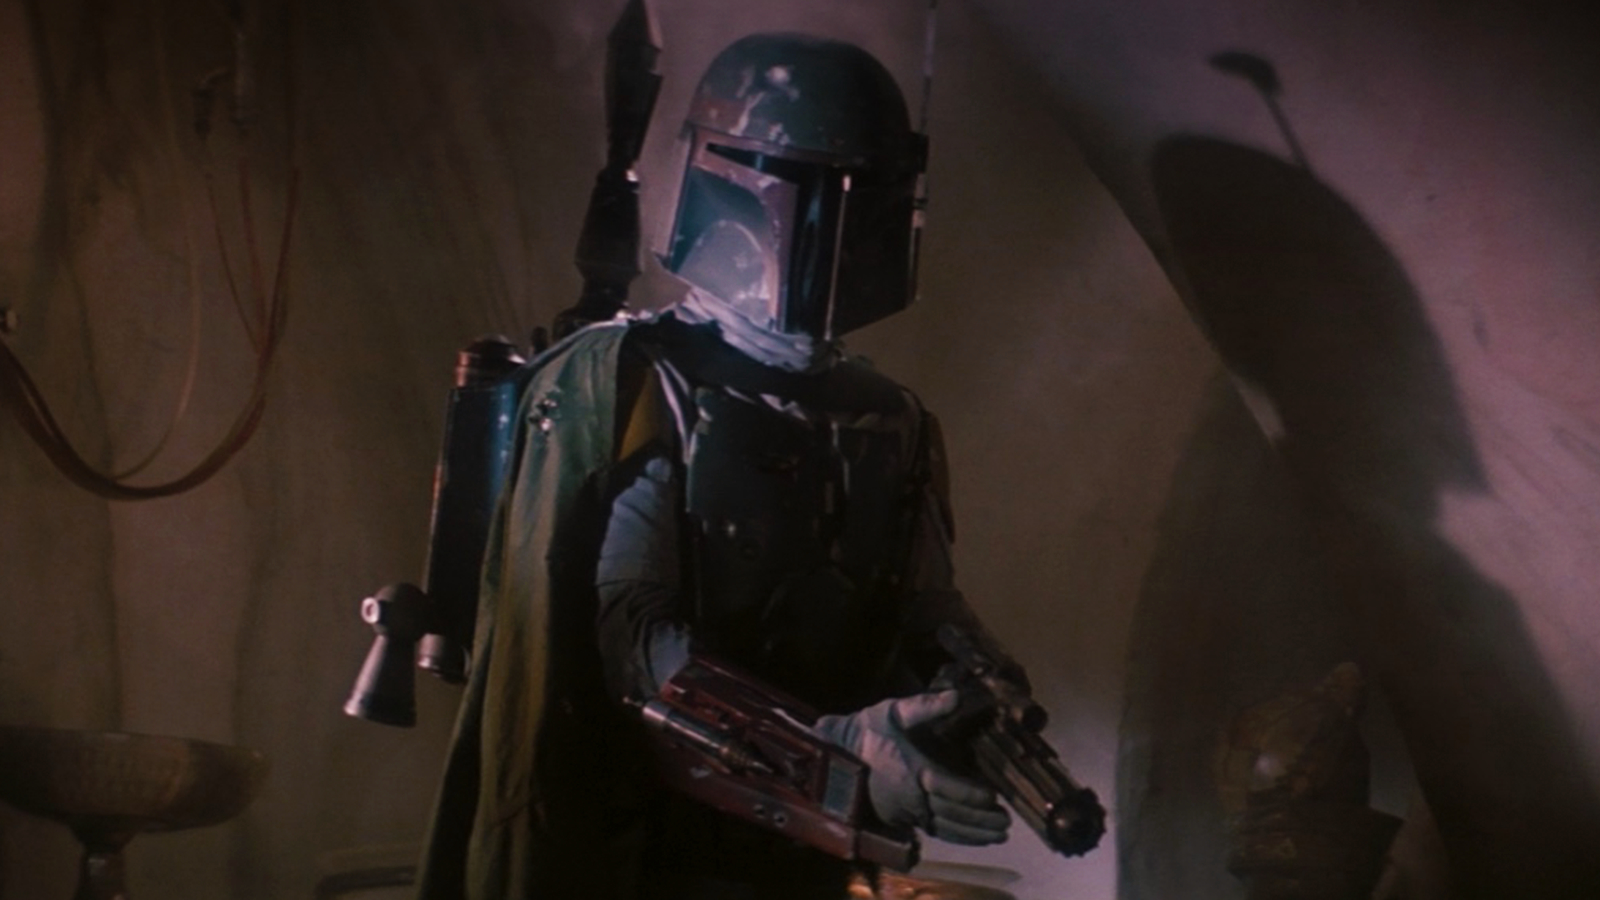 The iconic Star Wars bounty hunter will need to debut in The Mandalorian before Lucasfilm unveil his new series.